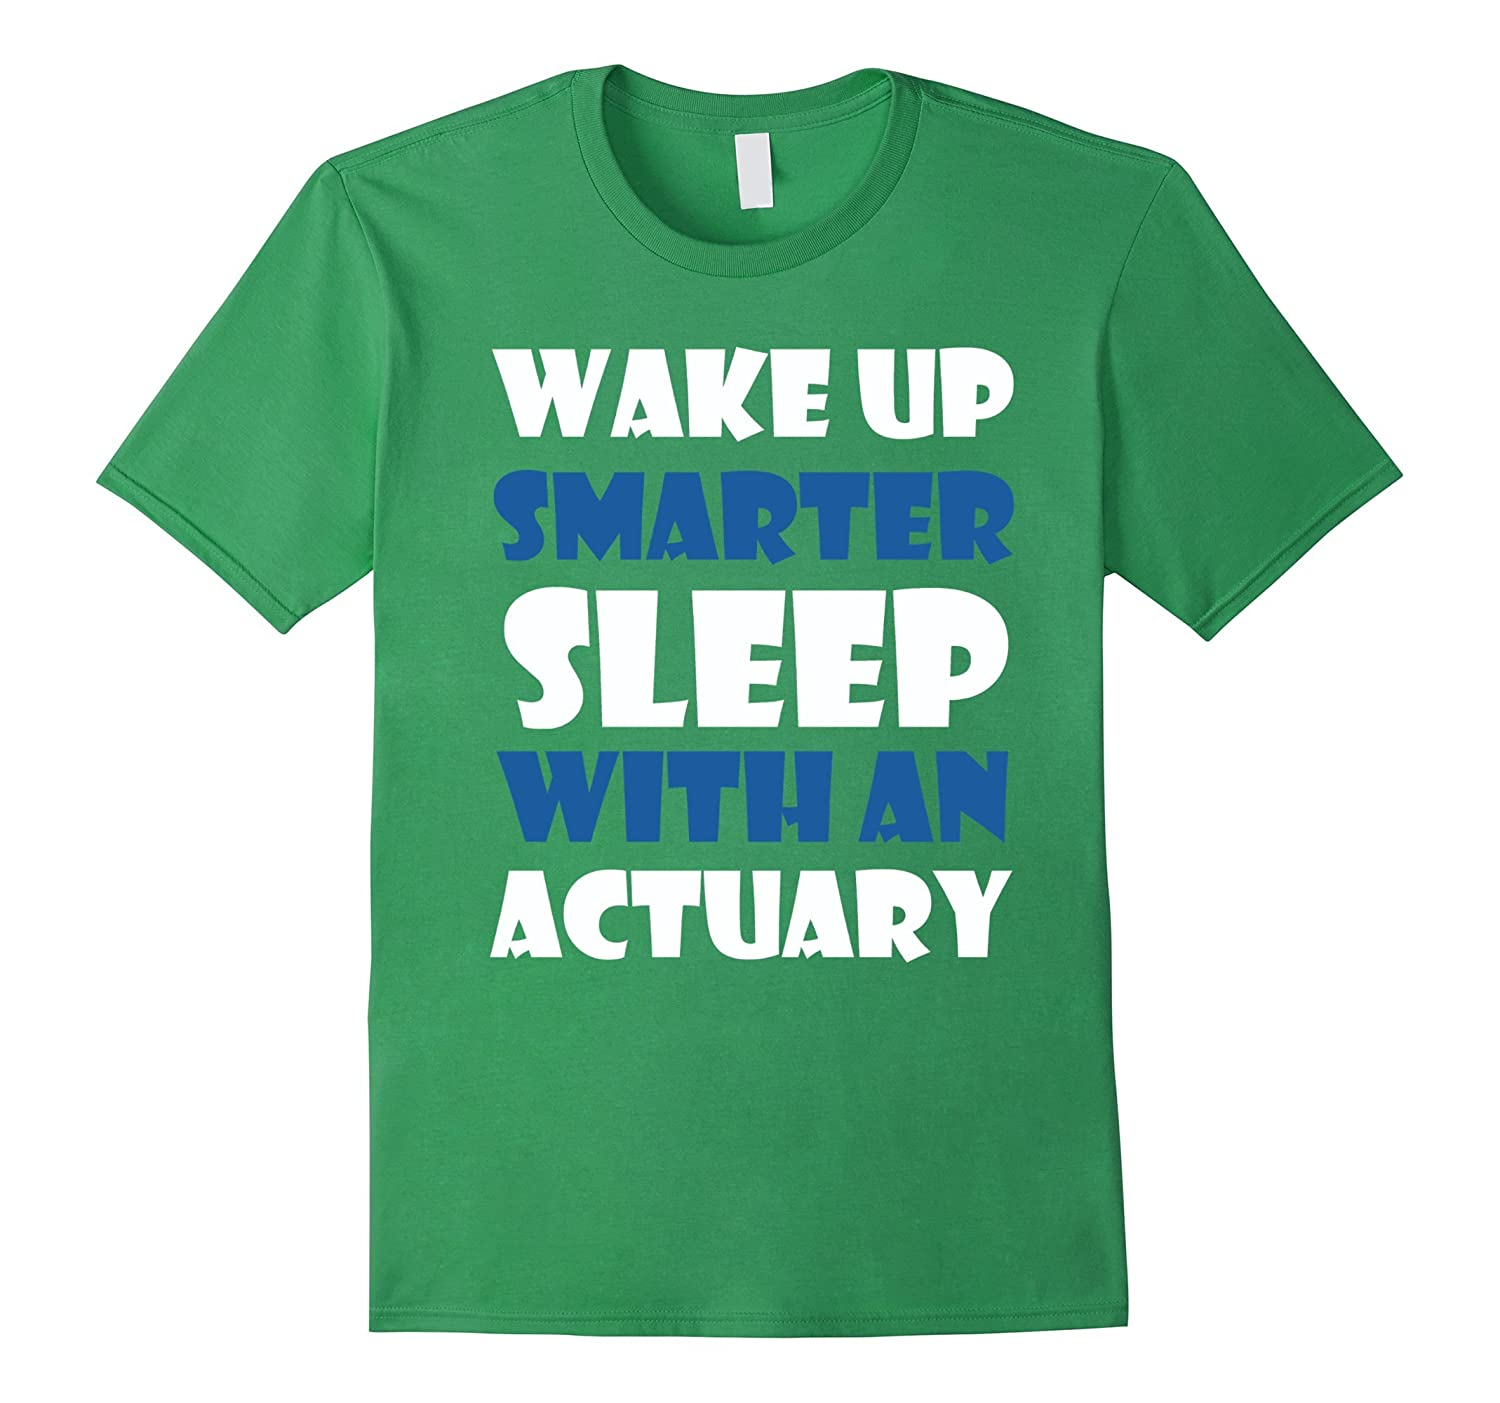 Actuary T-shirt - Wake up smarter sleep with an actuary-PL